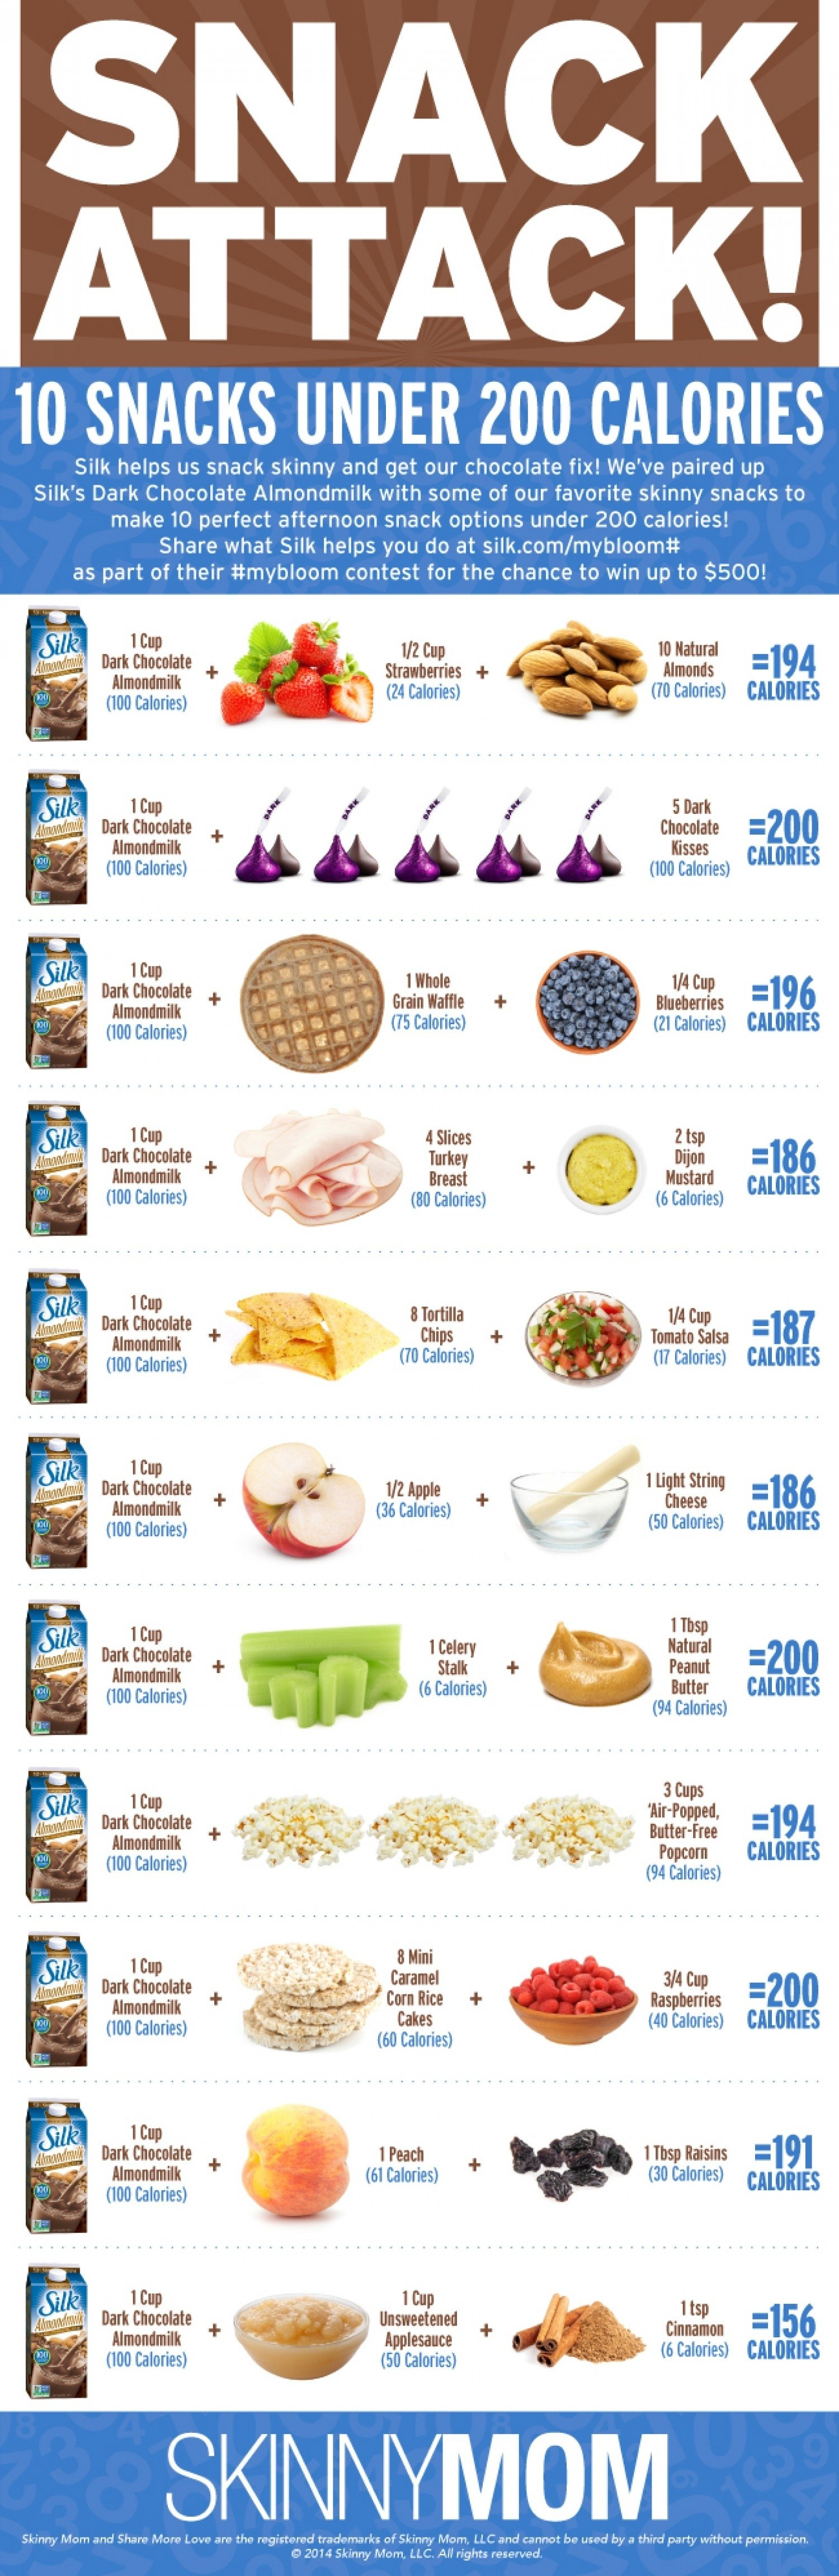 10 Awesome Healthy Snack Ideas For Weight Loss healthy snacks ideas for weight loss 2020